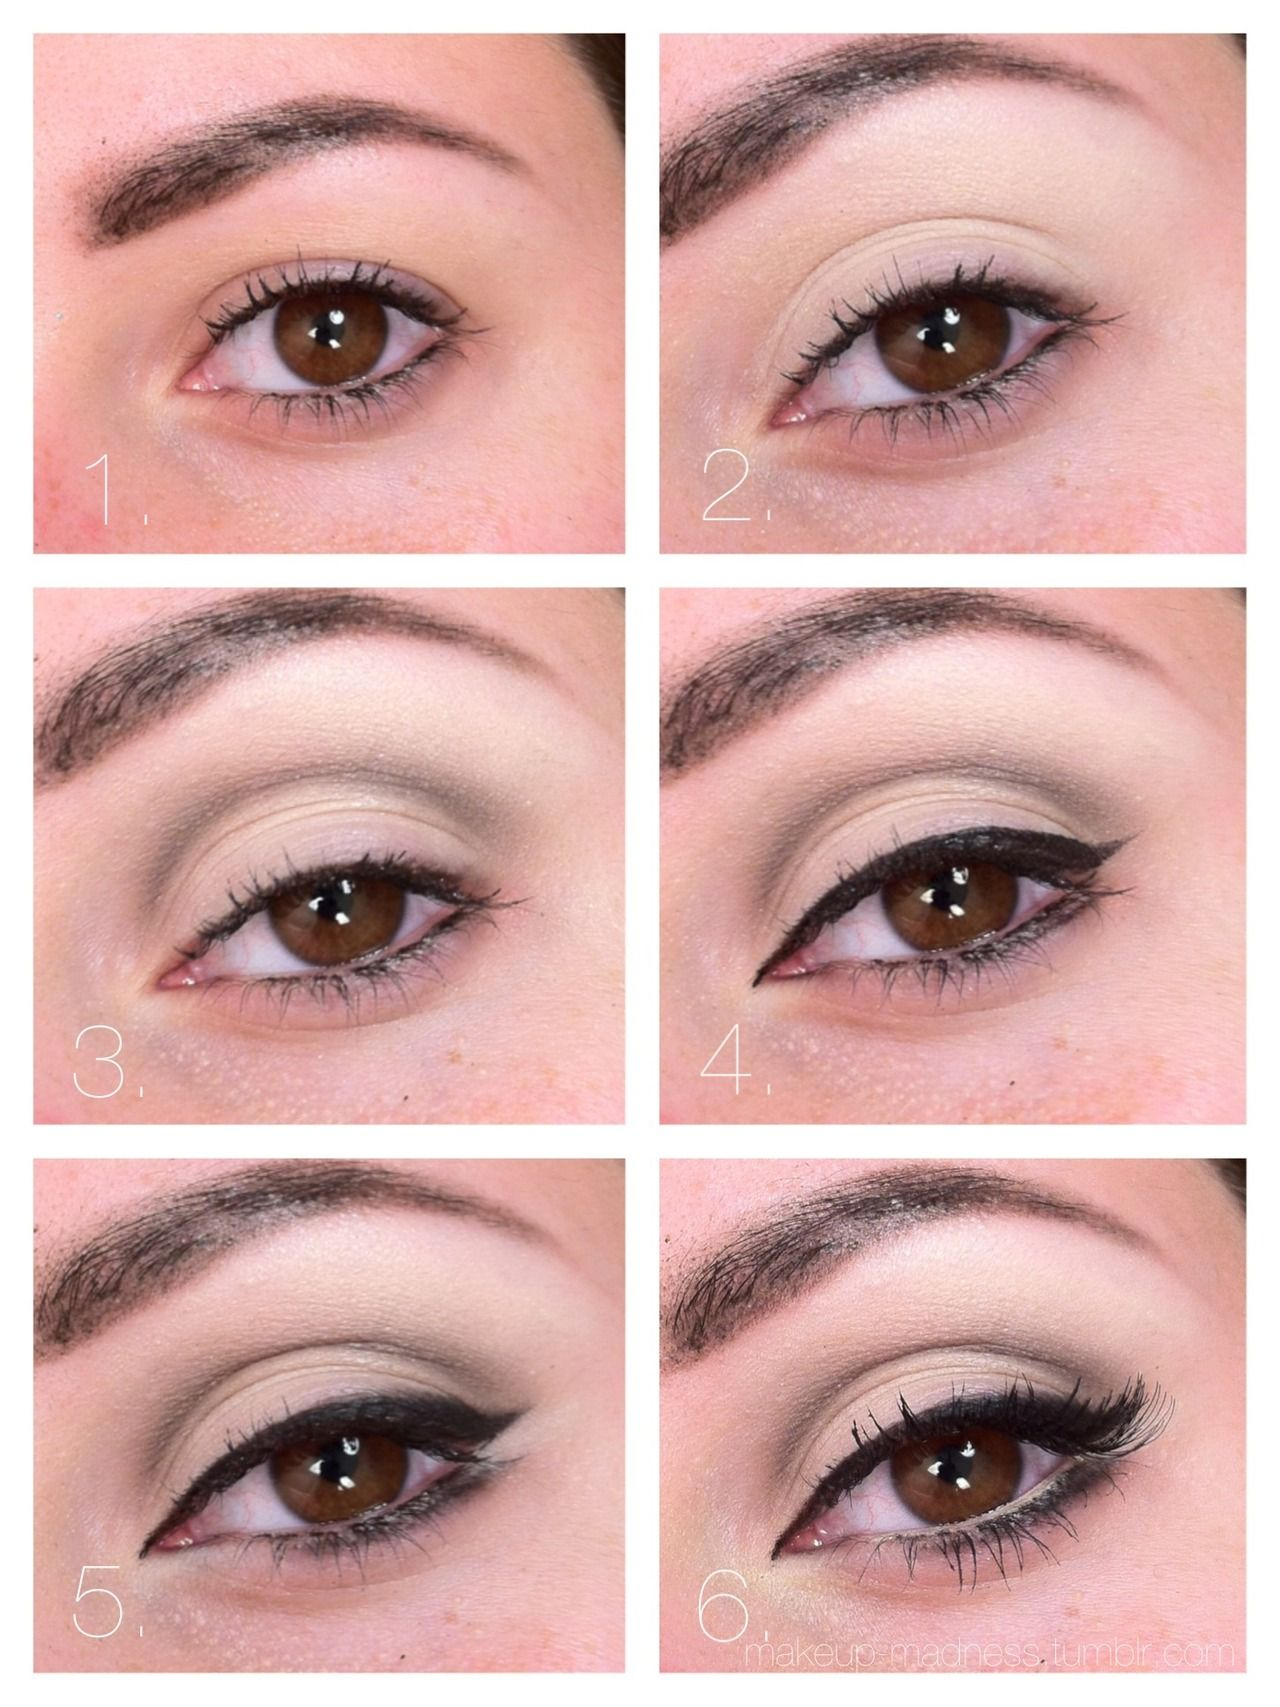 White black and gold wedding make up audrey hepburn make up white black and gold wedding make up audrey hepburn make up baditri Gallery